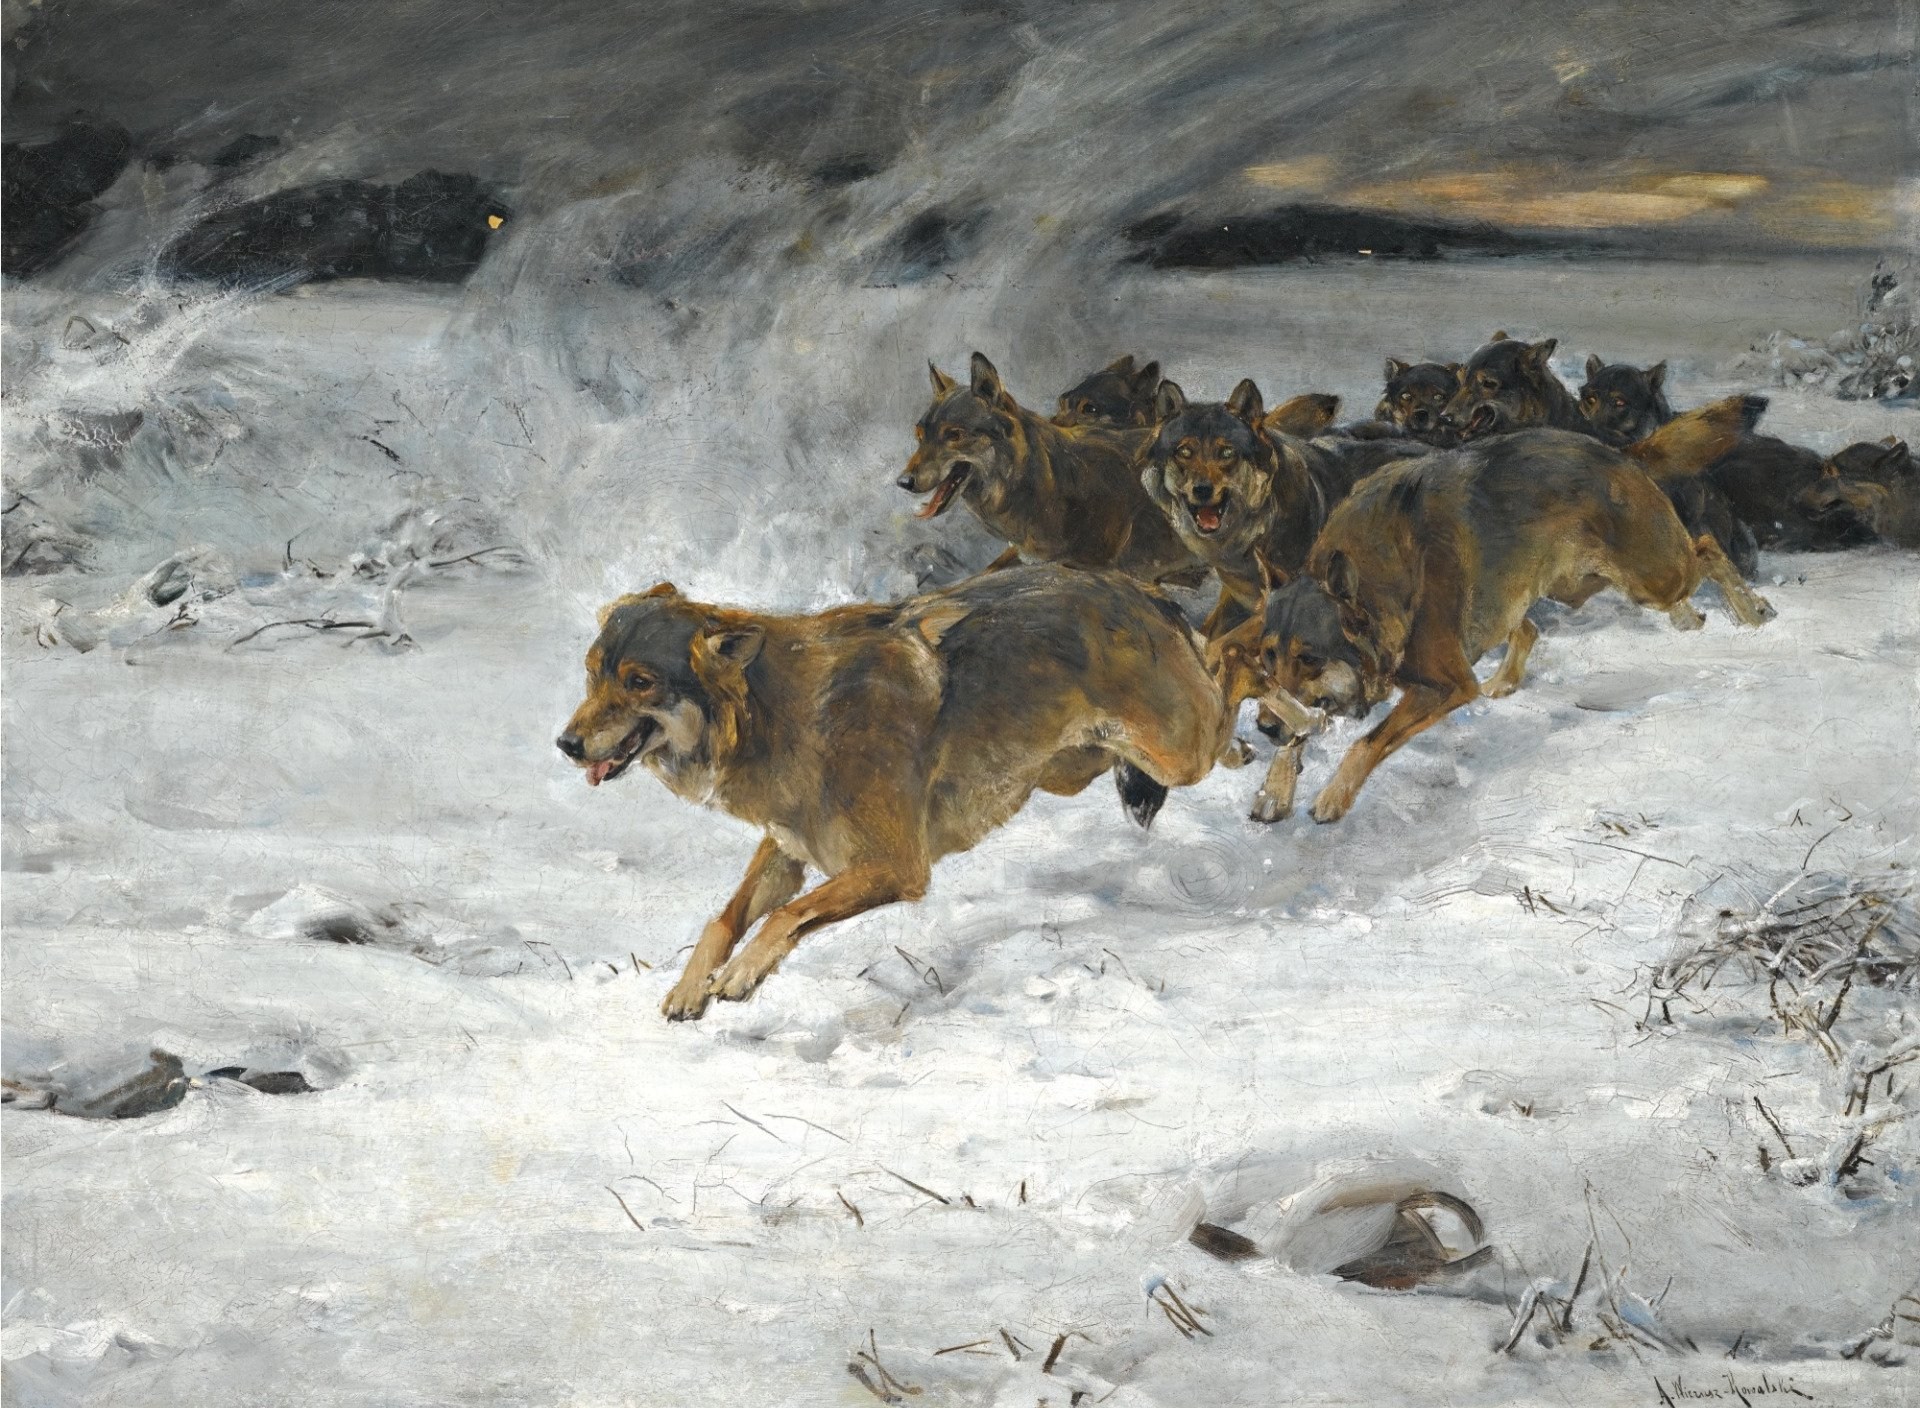 Wolf Pack Running In The Snow Hd Wallpaper Background Image 1920x1408 Id 1053137 Wallpaper Abyss